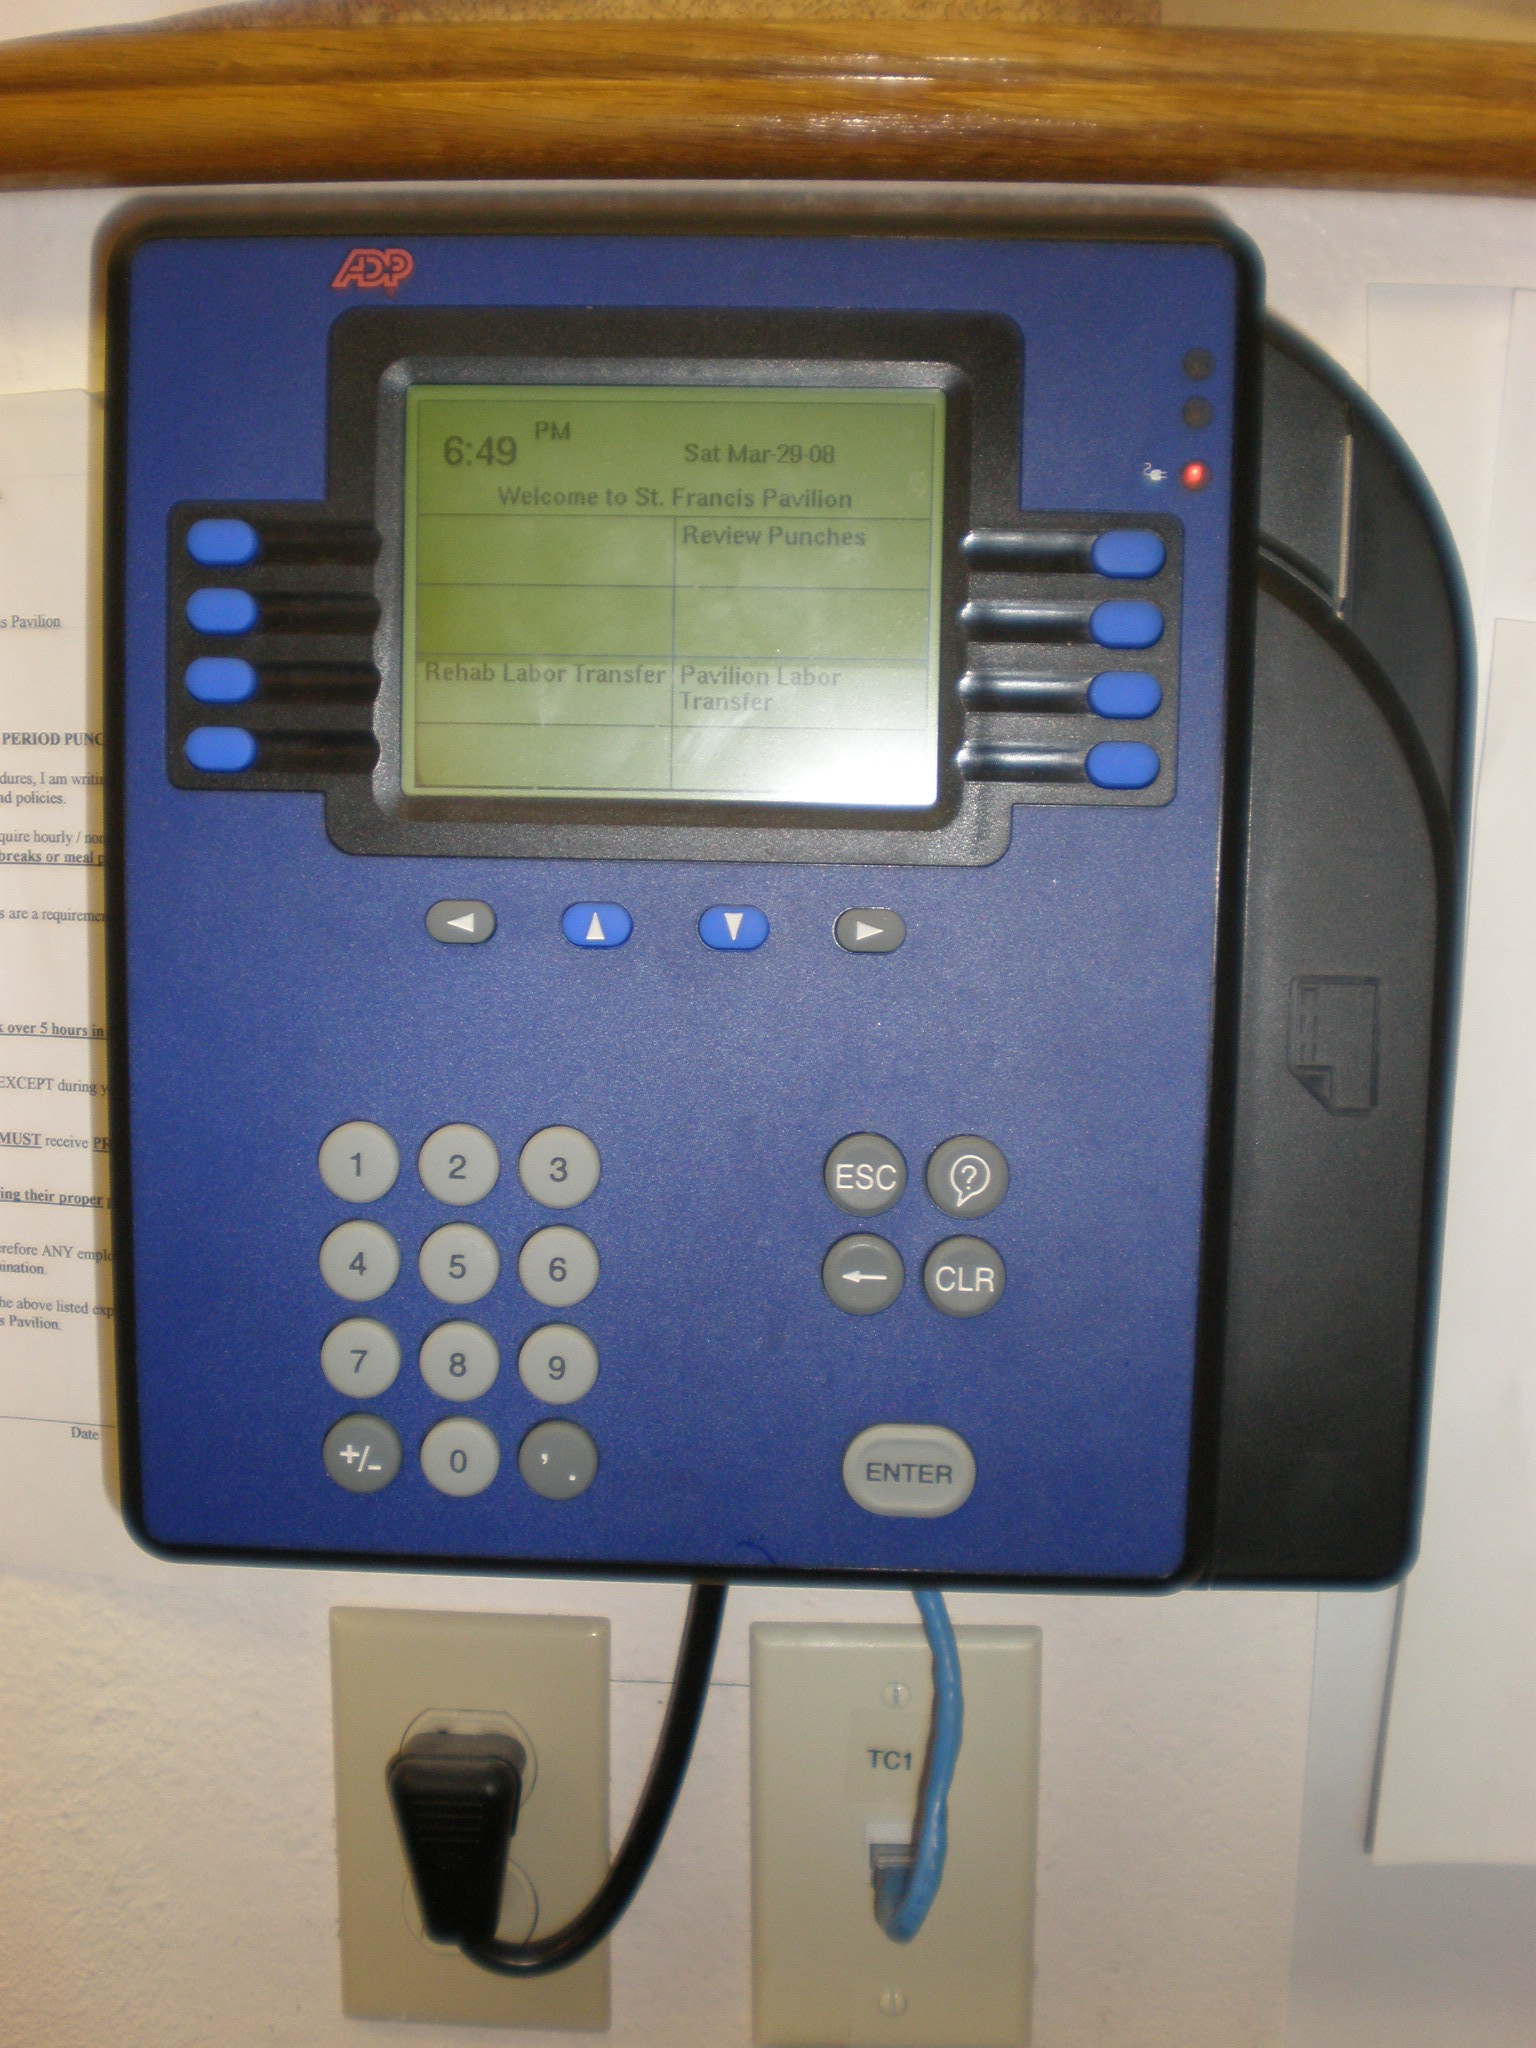 File:ADP Model 4500 timecard reader.JPG